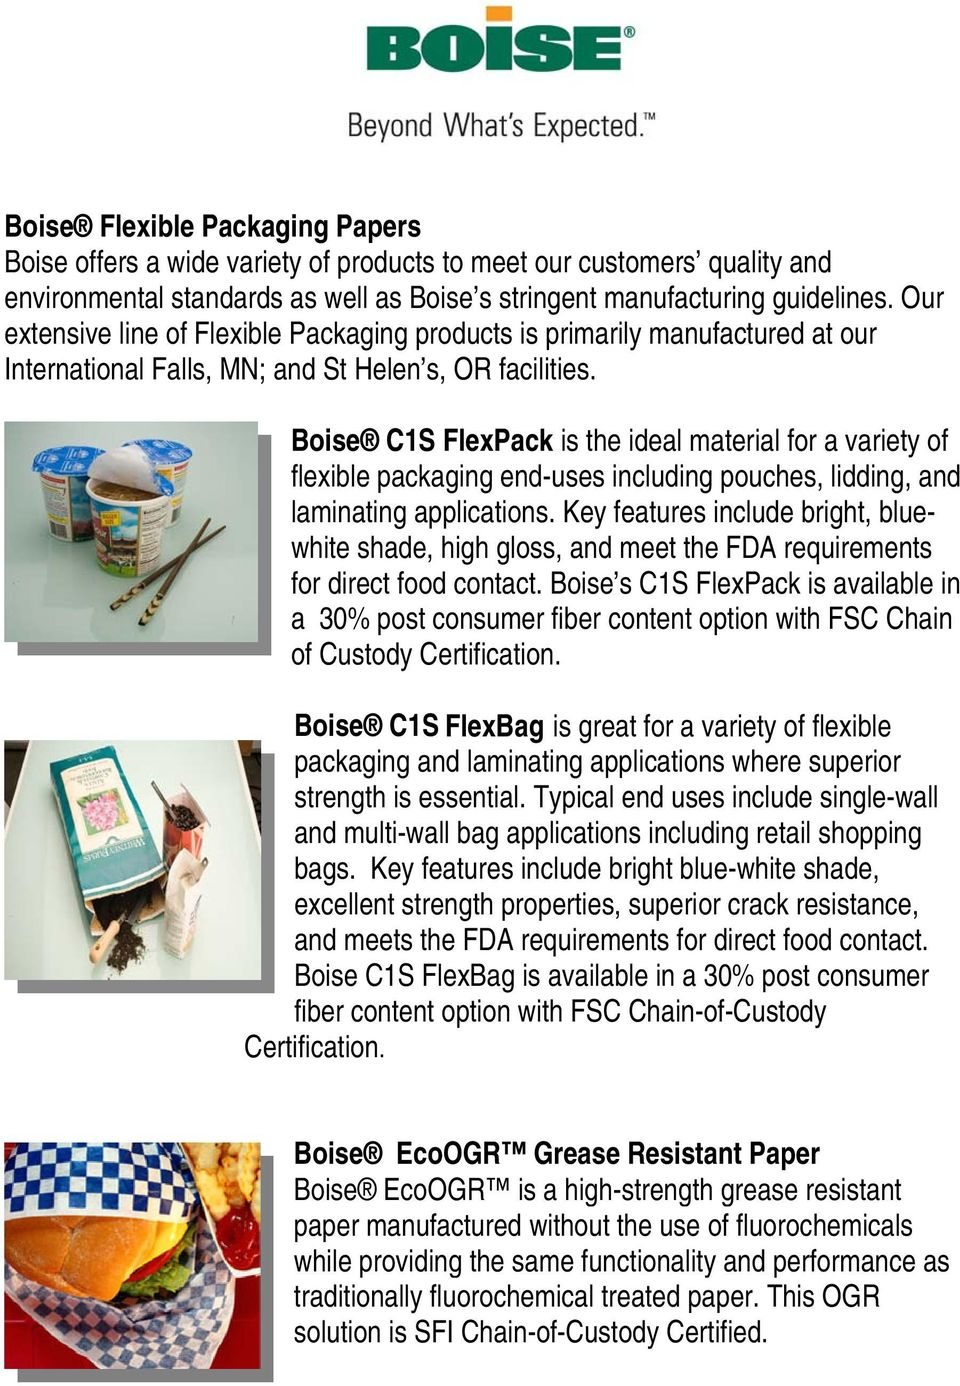 Boise C1S FlexPack is the ideal material for a variety of flexible packaging end-uses including pouches, lidding, and laminating applications.